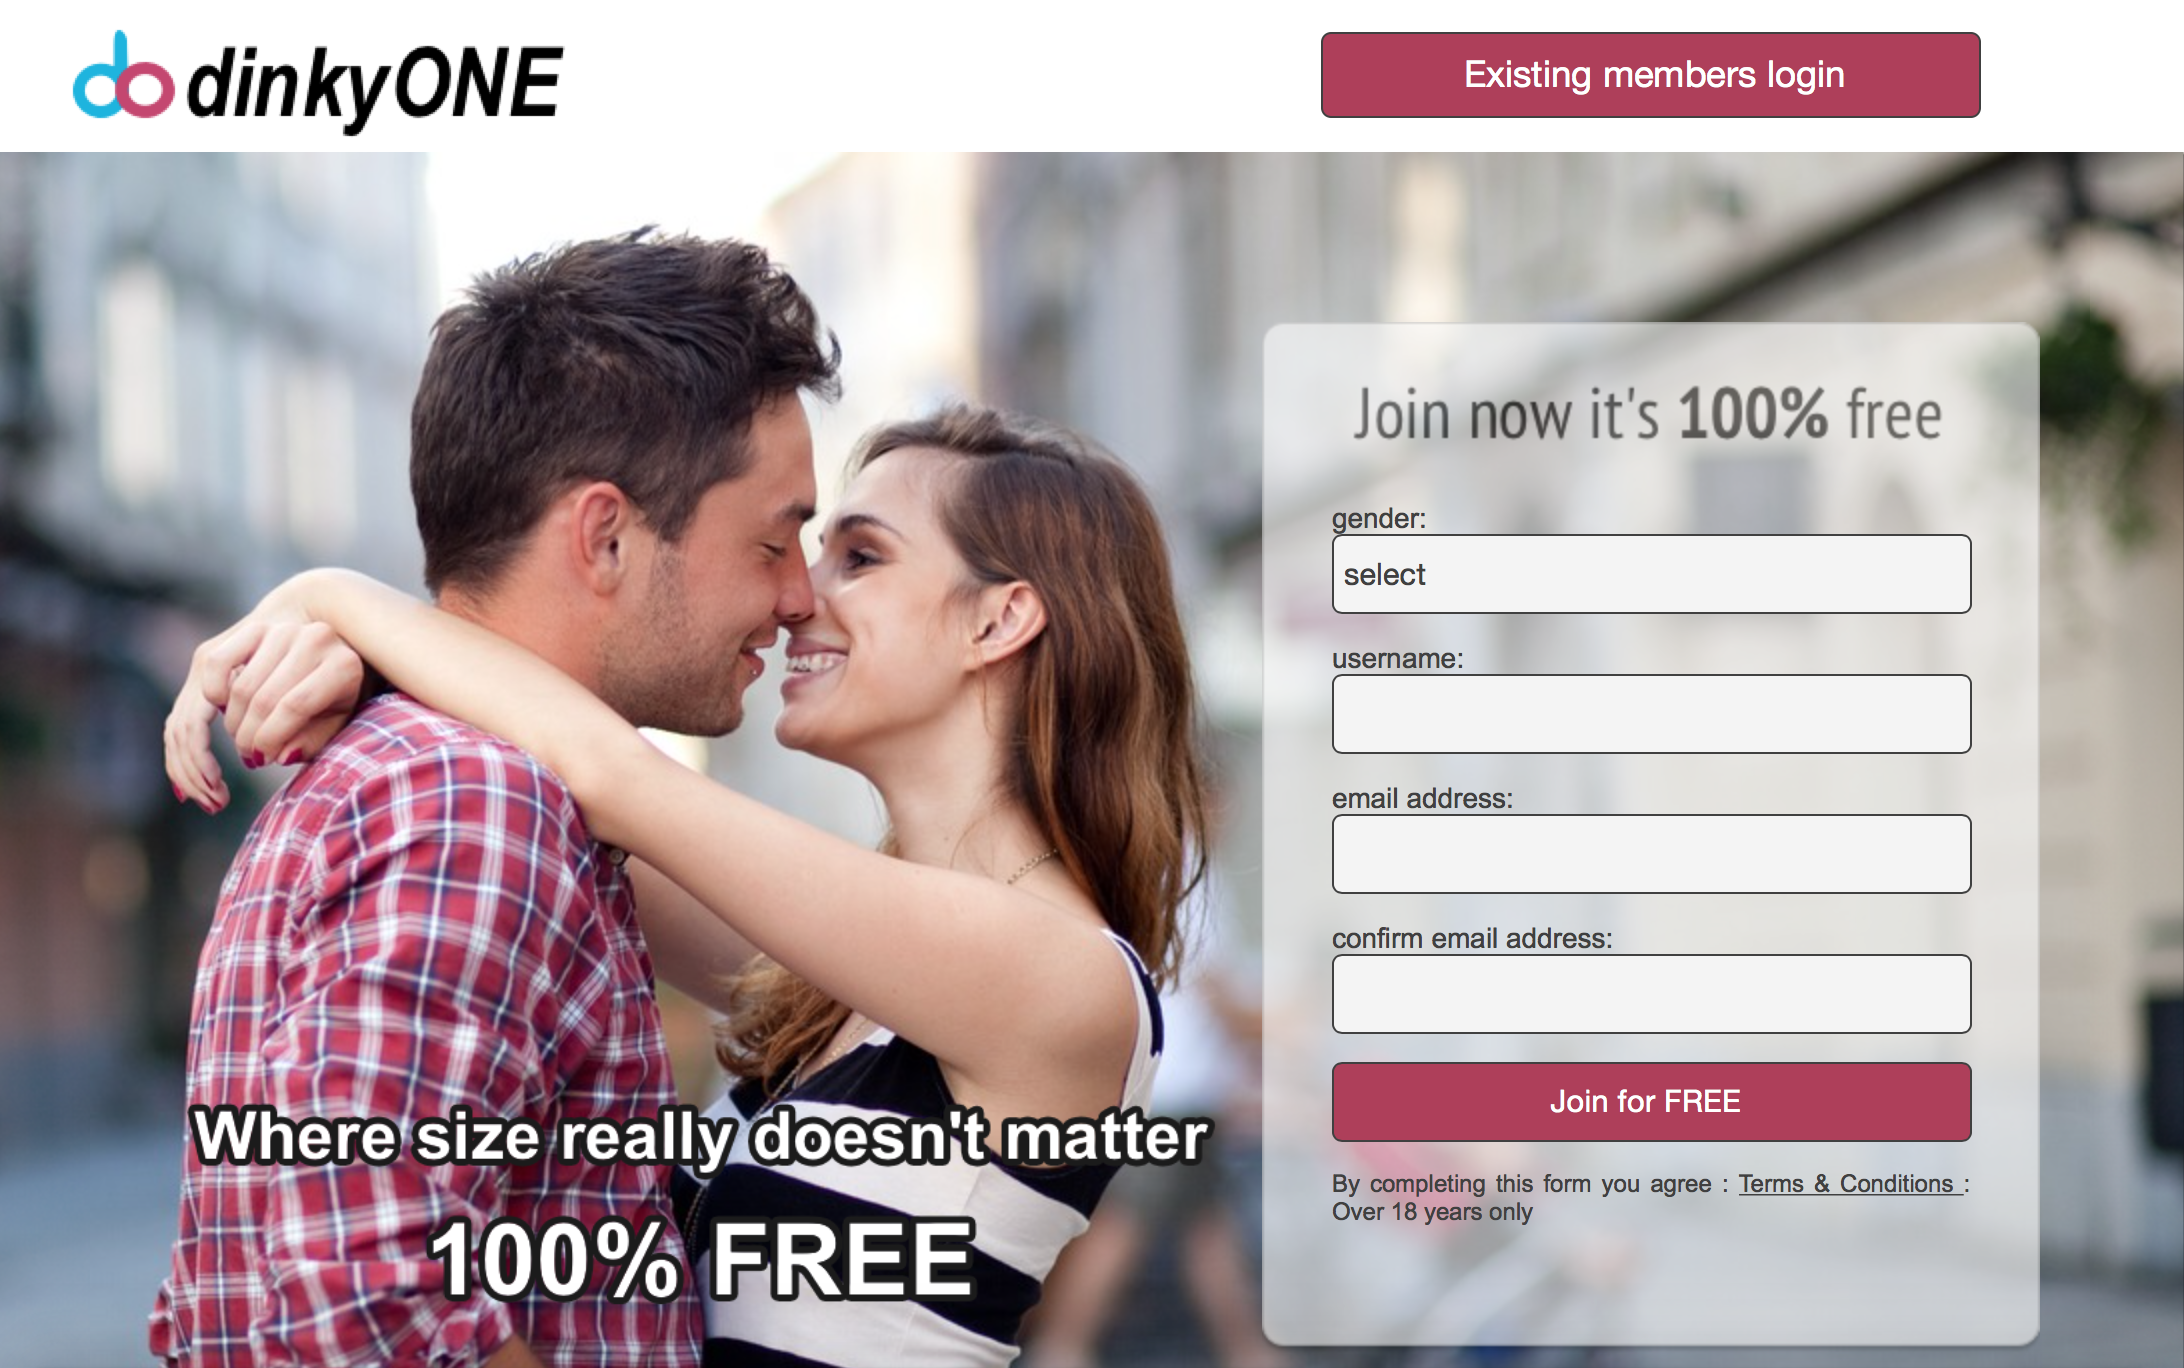 Online Dating Site Reveals Rules For First Contact Derived